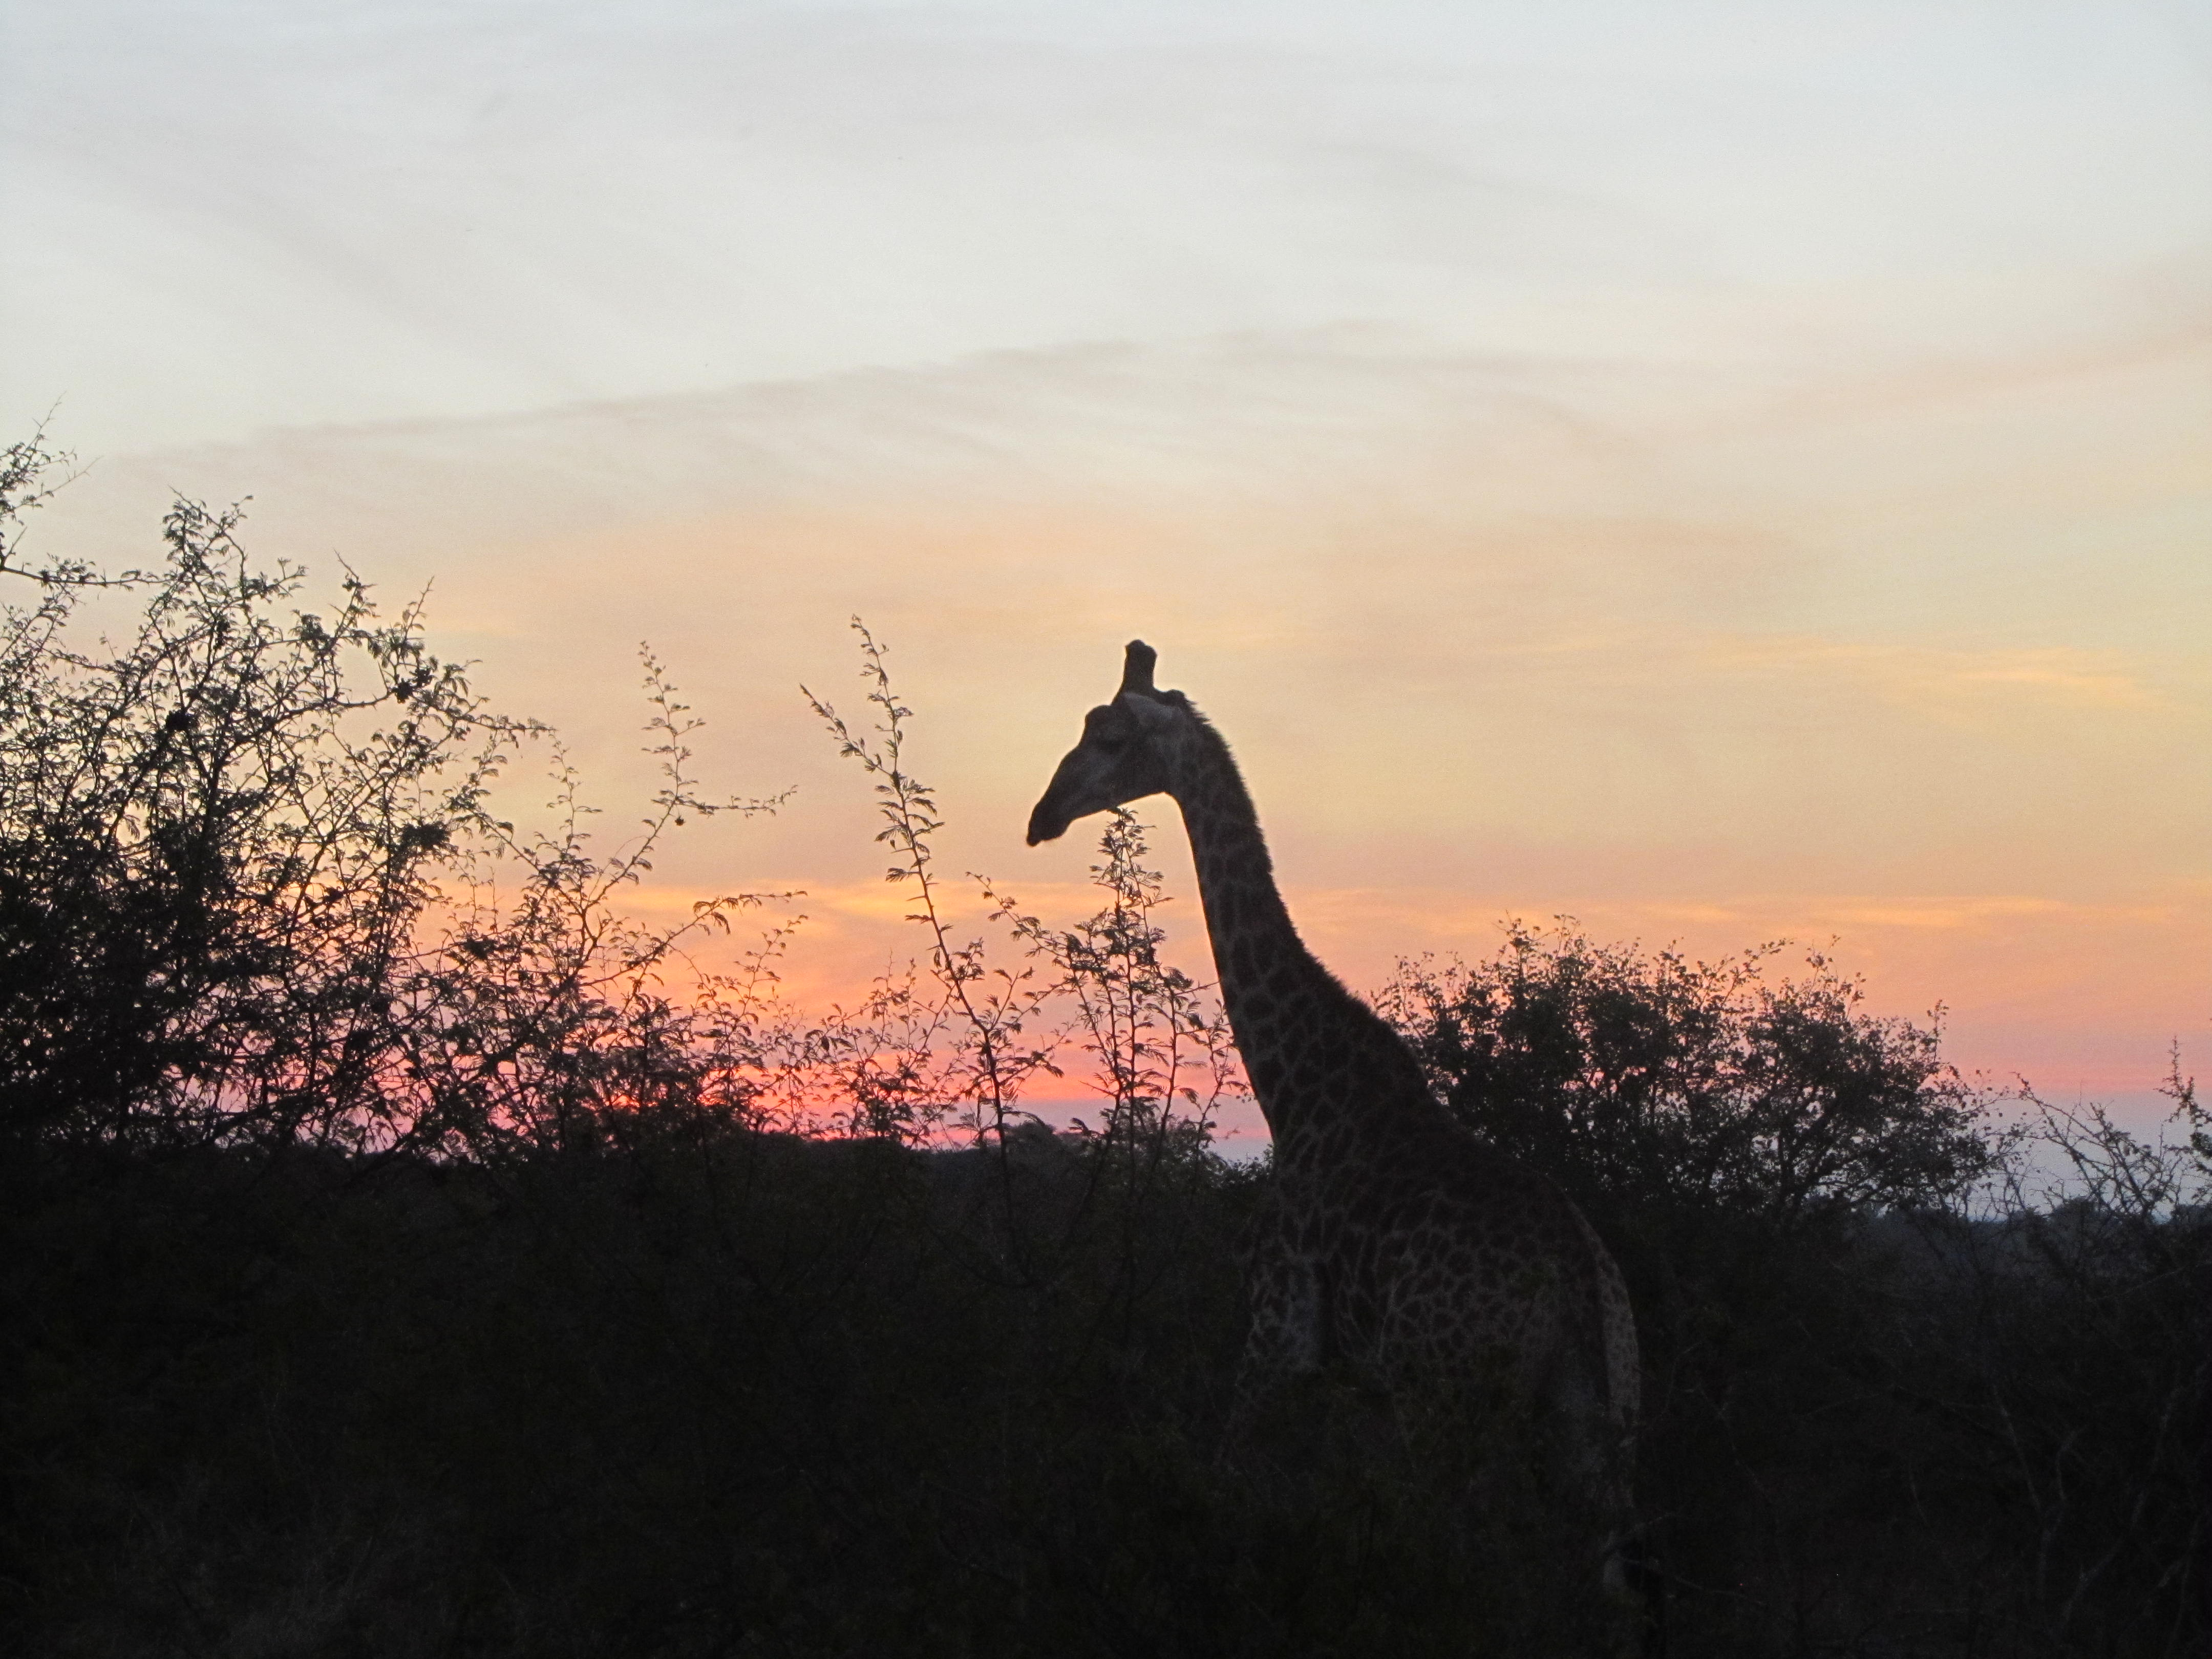 Sunrise and Sunsets in the Kruger Park